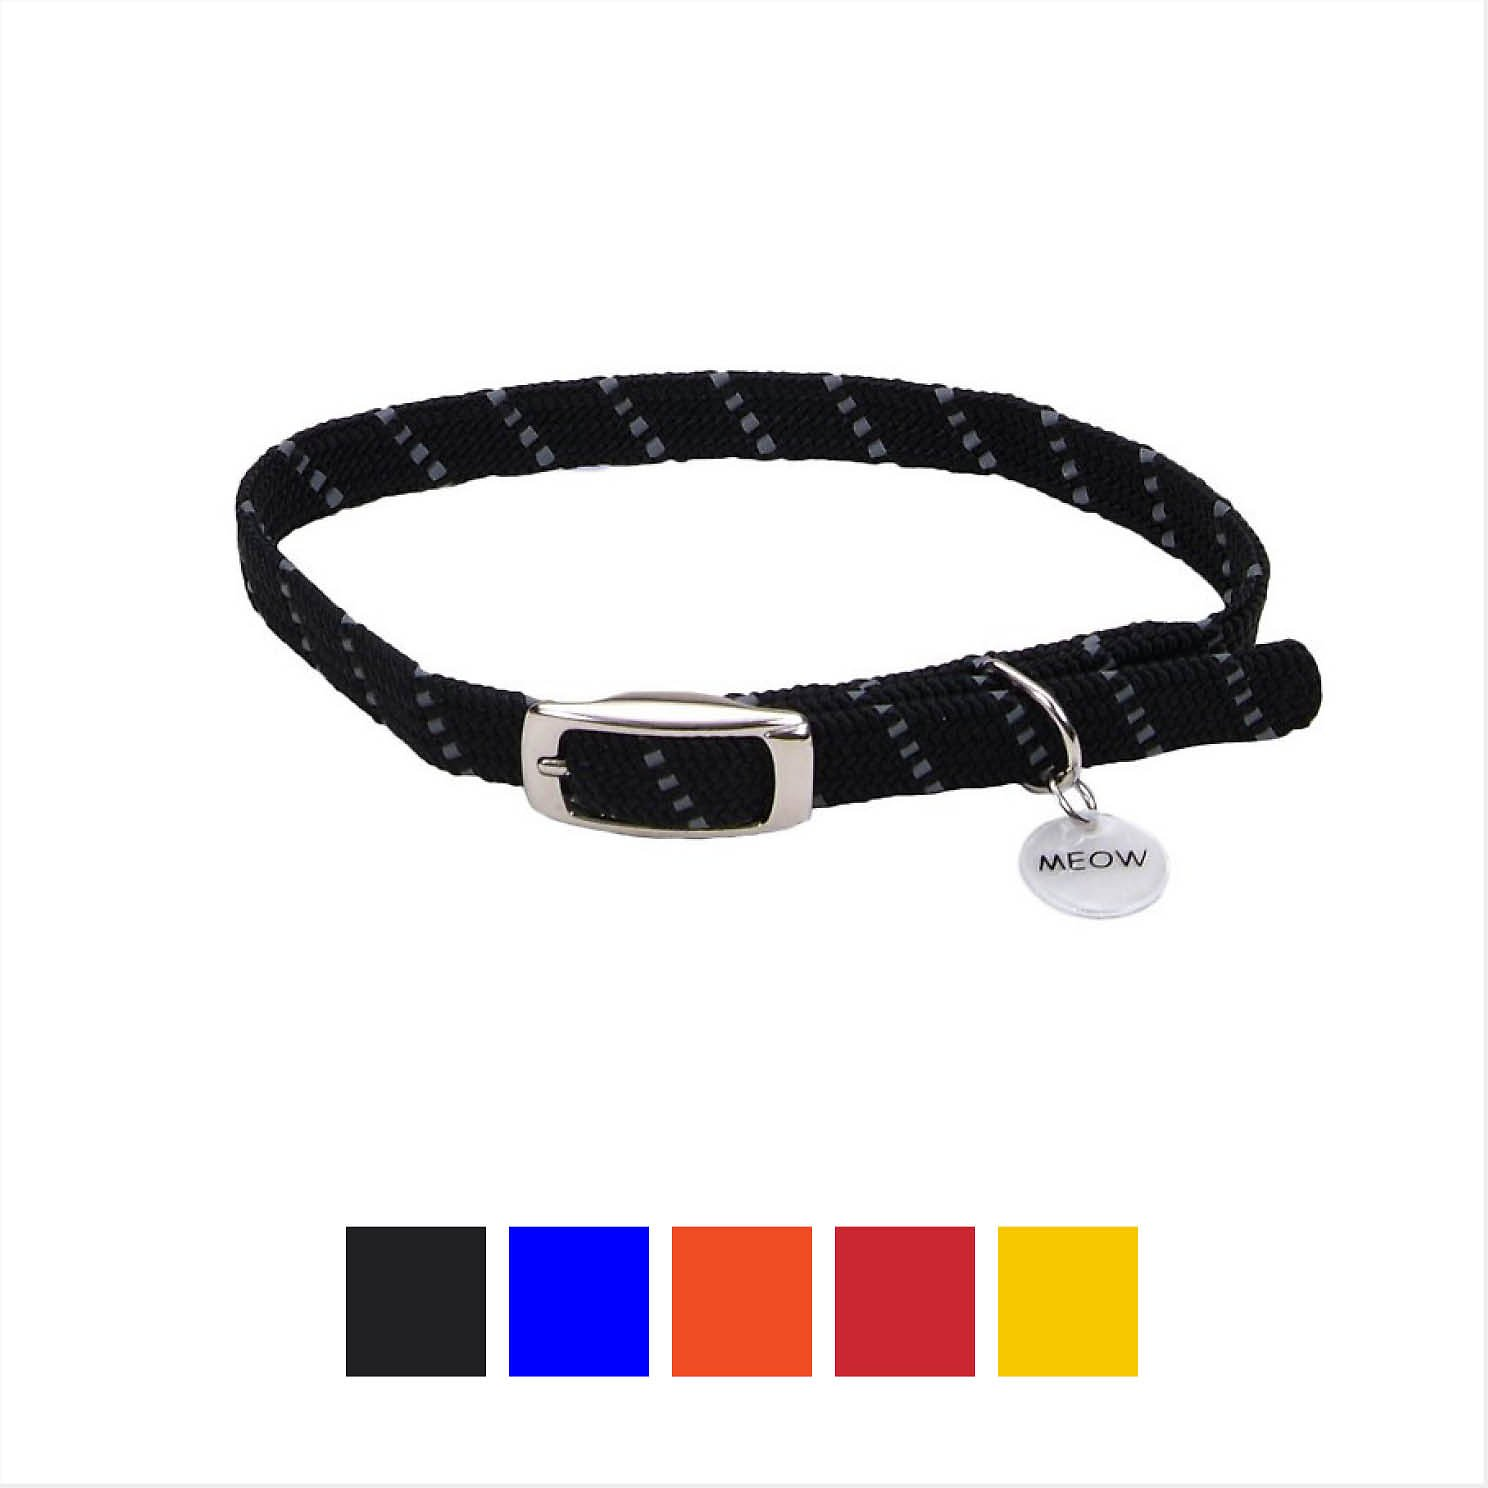 ElastaCat Reflective Safety Stretch Cat Collar, Black, 10-in